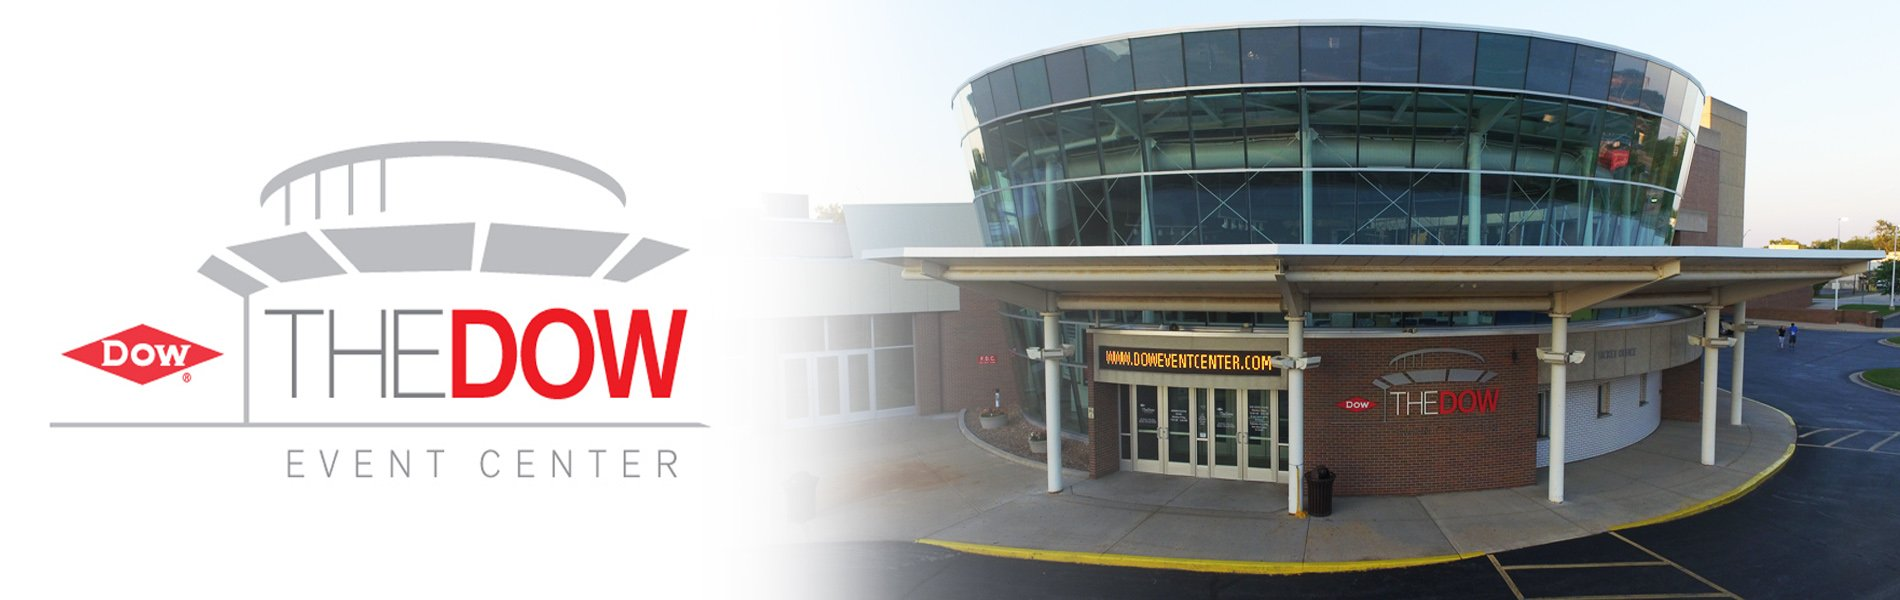 The Dow Event Center Banner